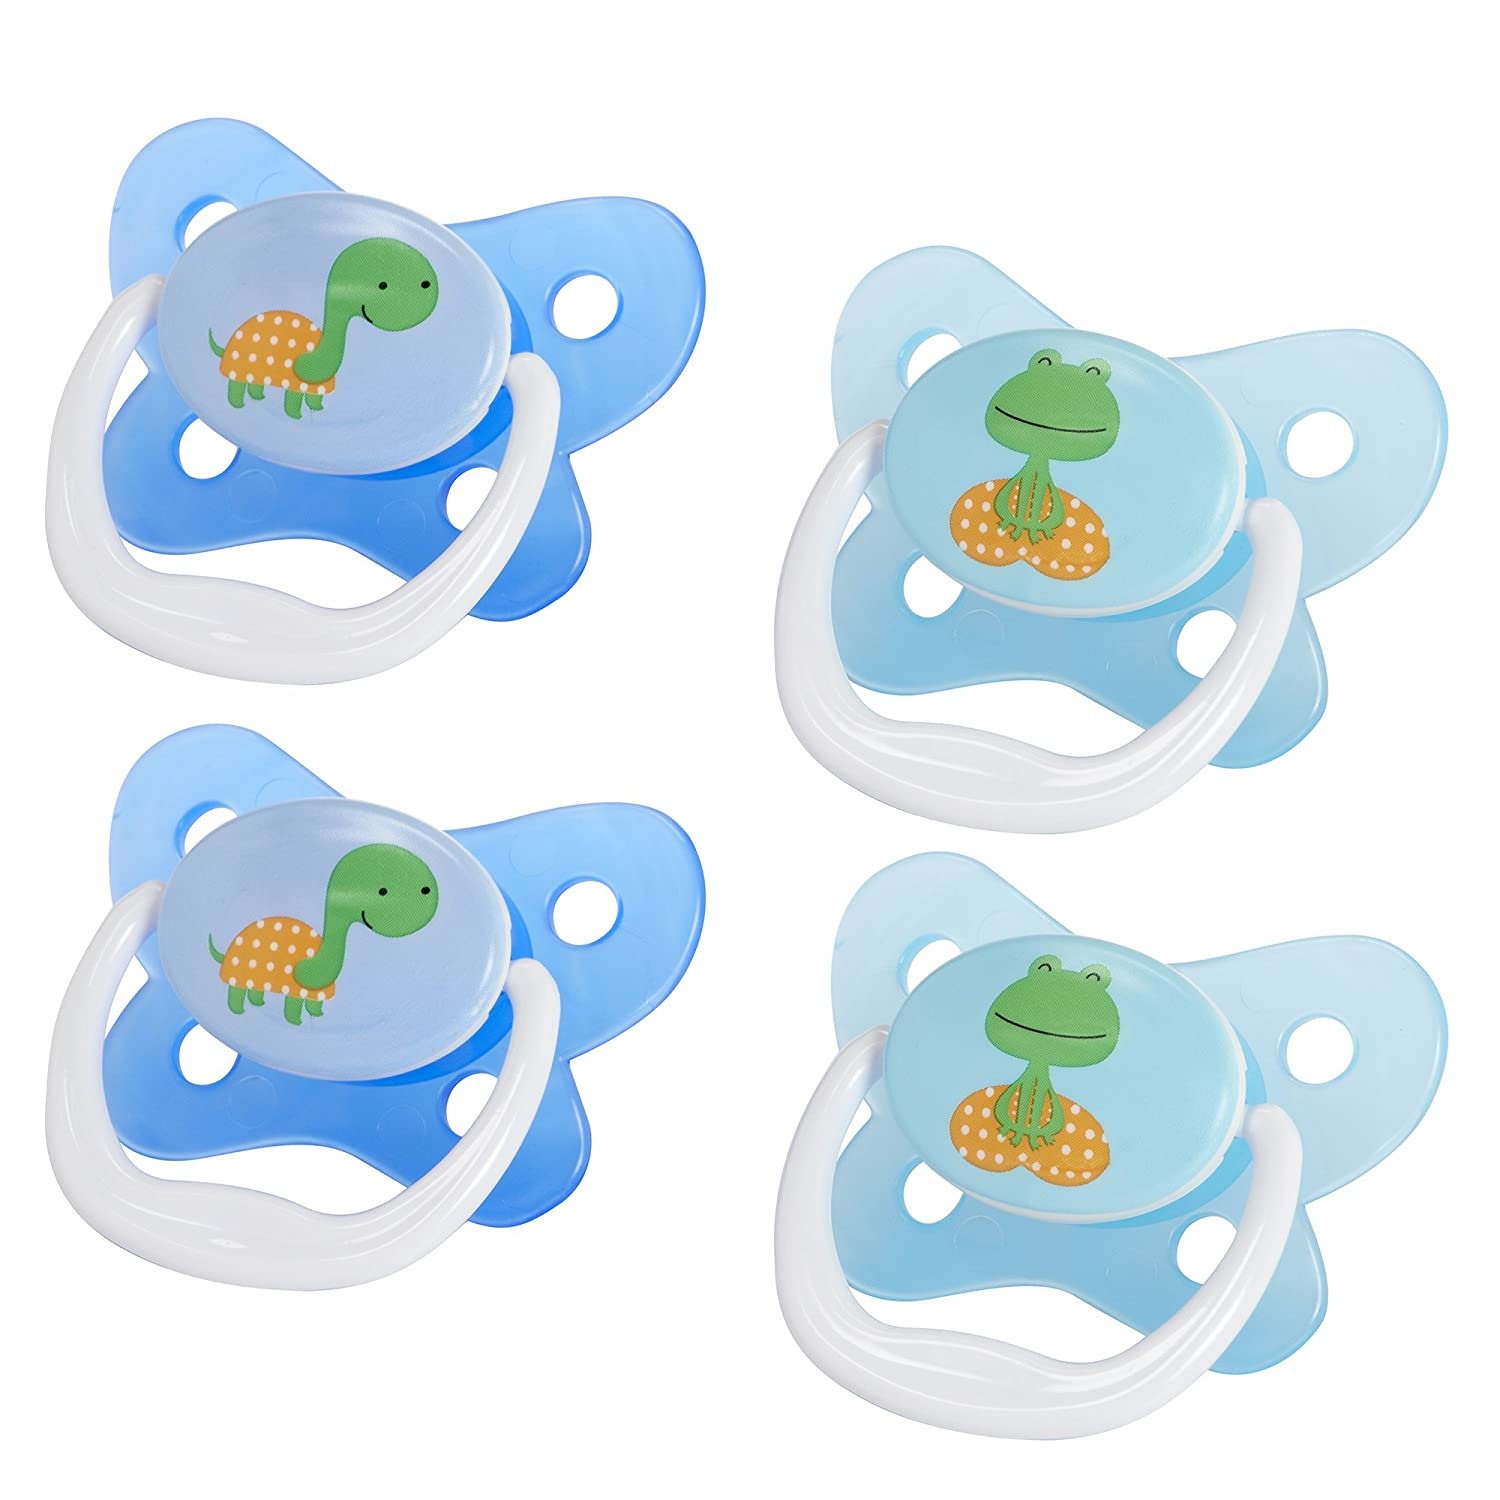 Dr. Brown's 4 Piece Prevent Butterfly Stage 3 Pacifier, Blue, 12 Plus Month by Dr. Brown's   B015XBY7S6